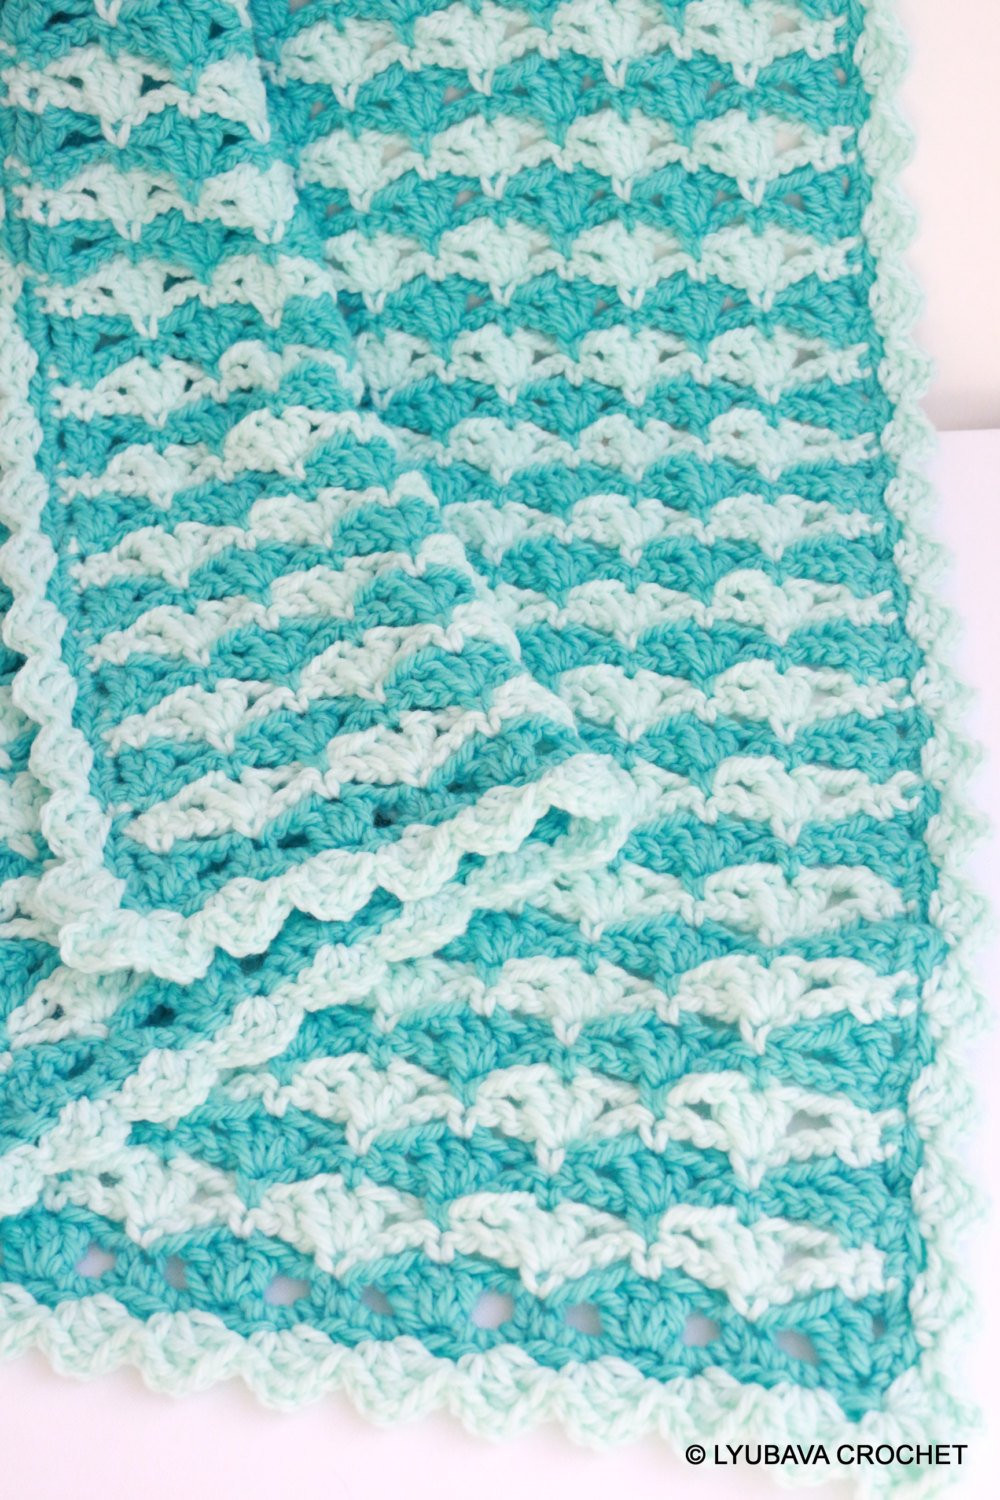 Baby Boy Crochet Blanket Patterns Inspirational Turquoise Baby Blanket Chunky Crochet Blanket for Baby Boy Of Baby Boy Crochet Blanket Patterns Lovely Navy and Teal for A Baby Boy